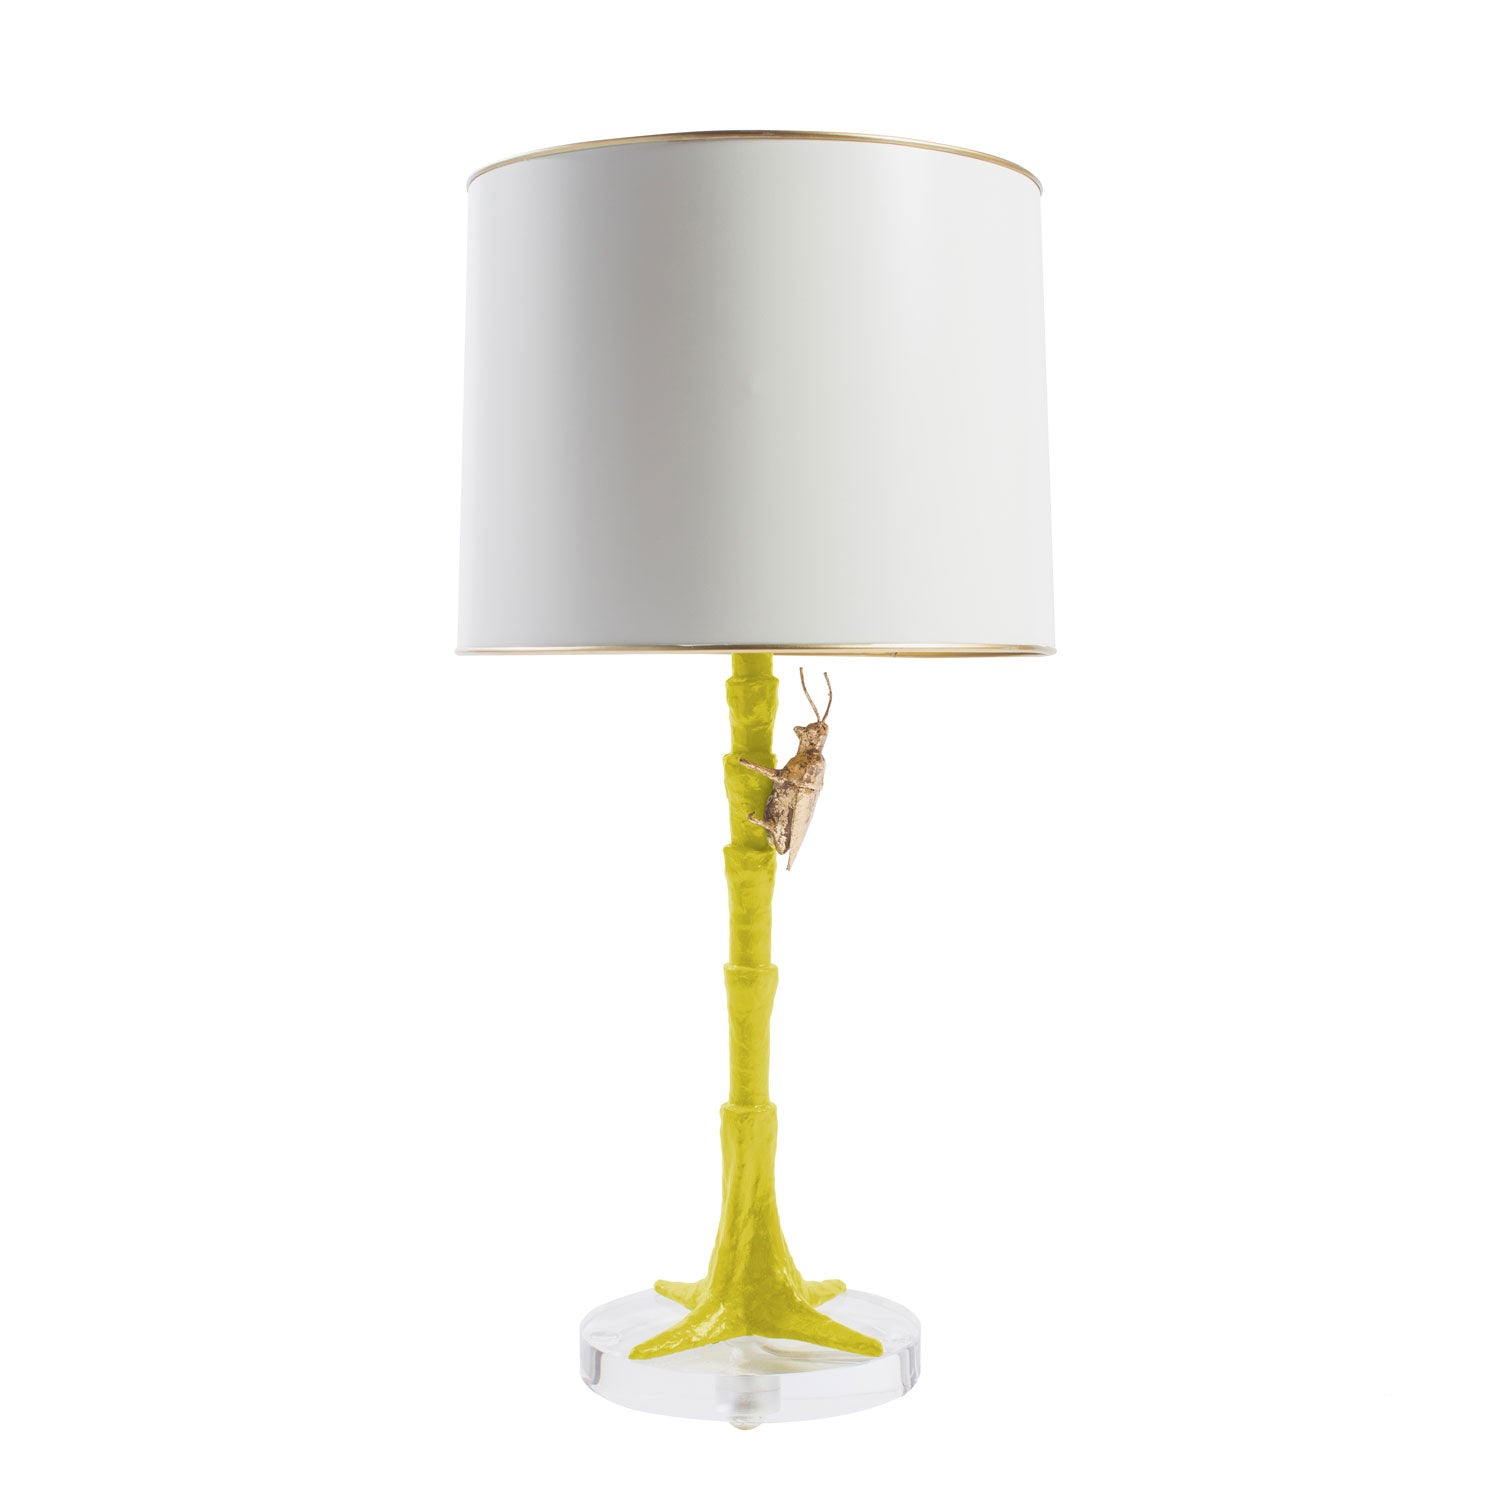 chartreuse gold bug lamp, handmade from papier mache